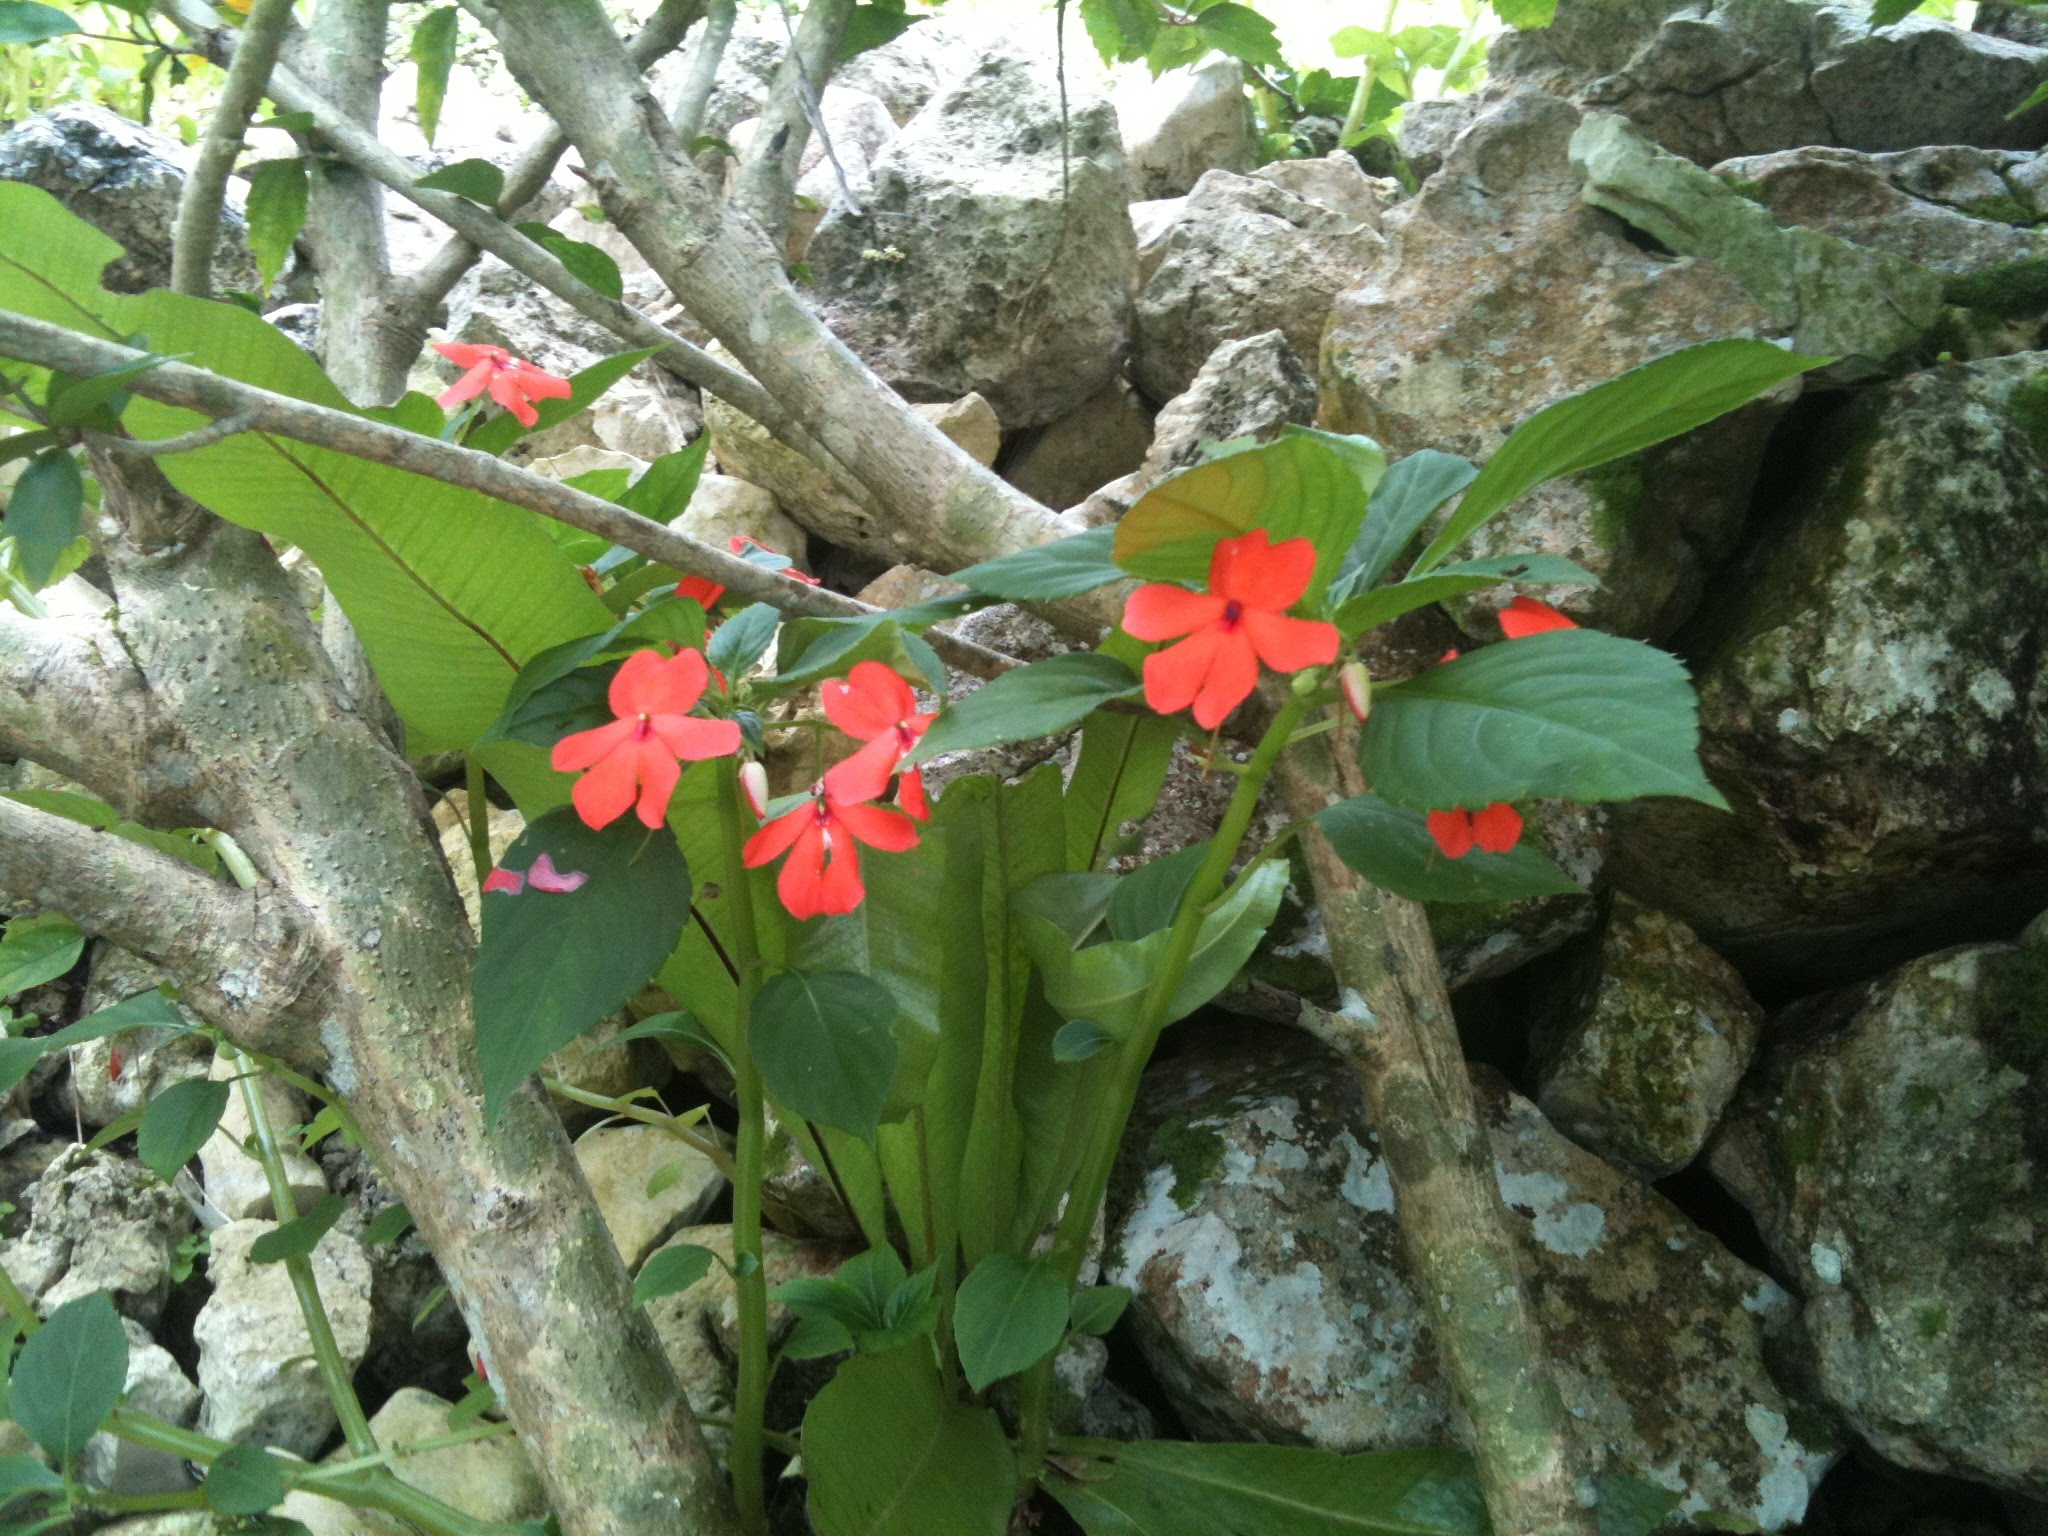 Bright red flowers growing wild